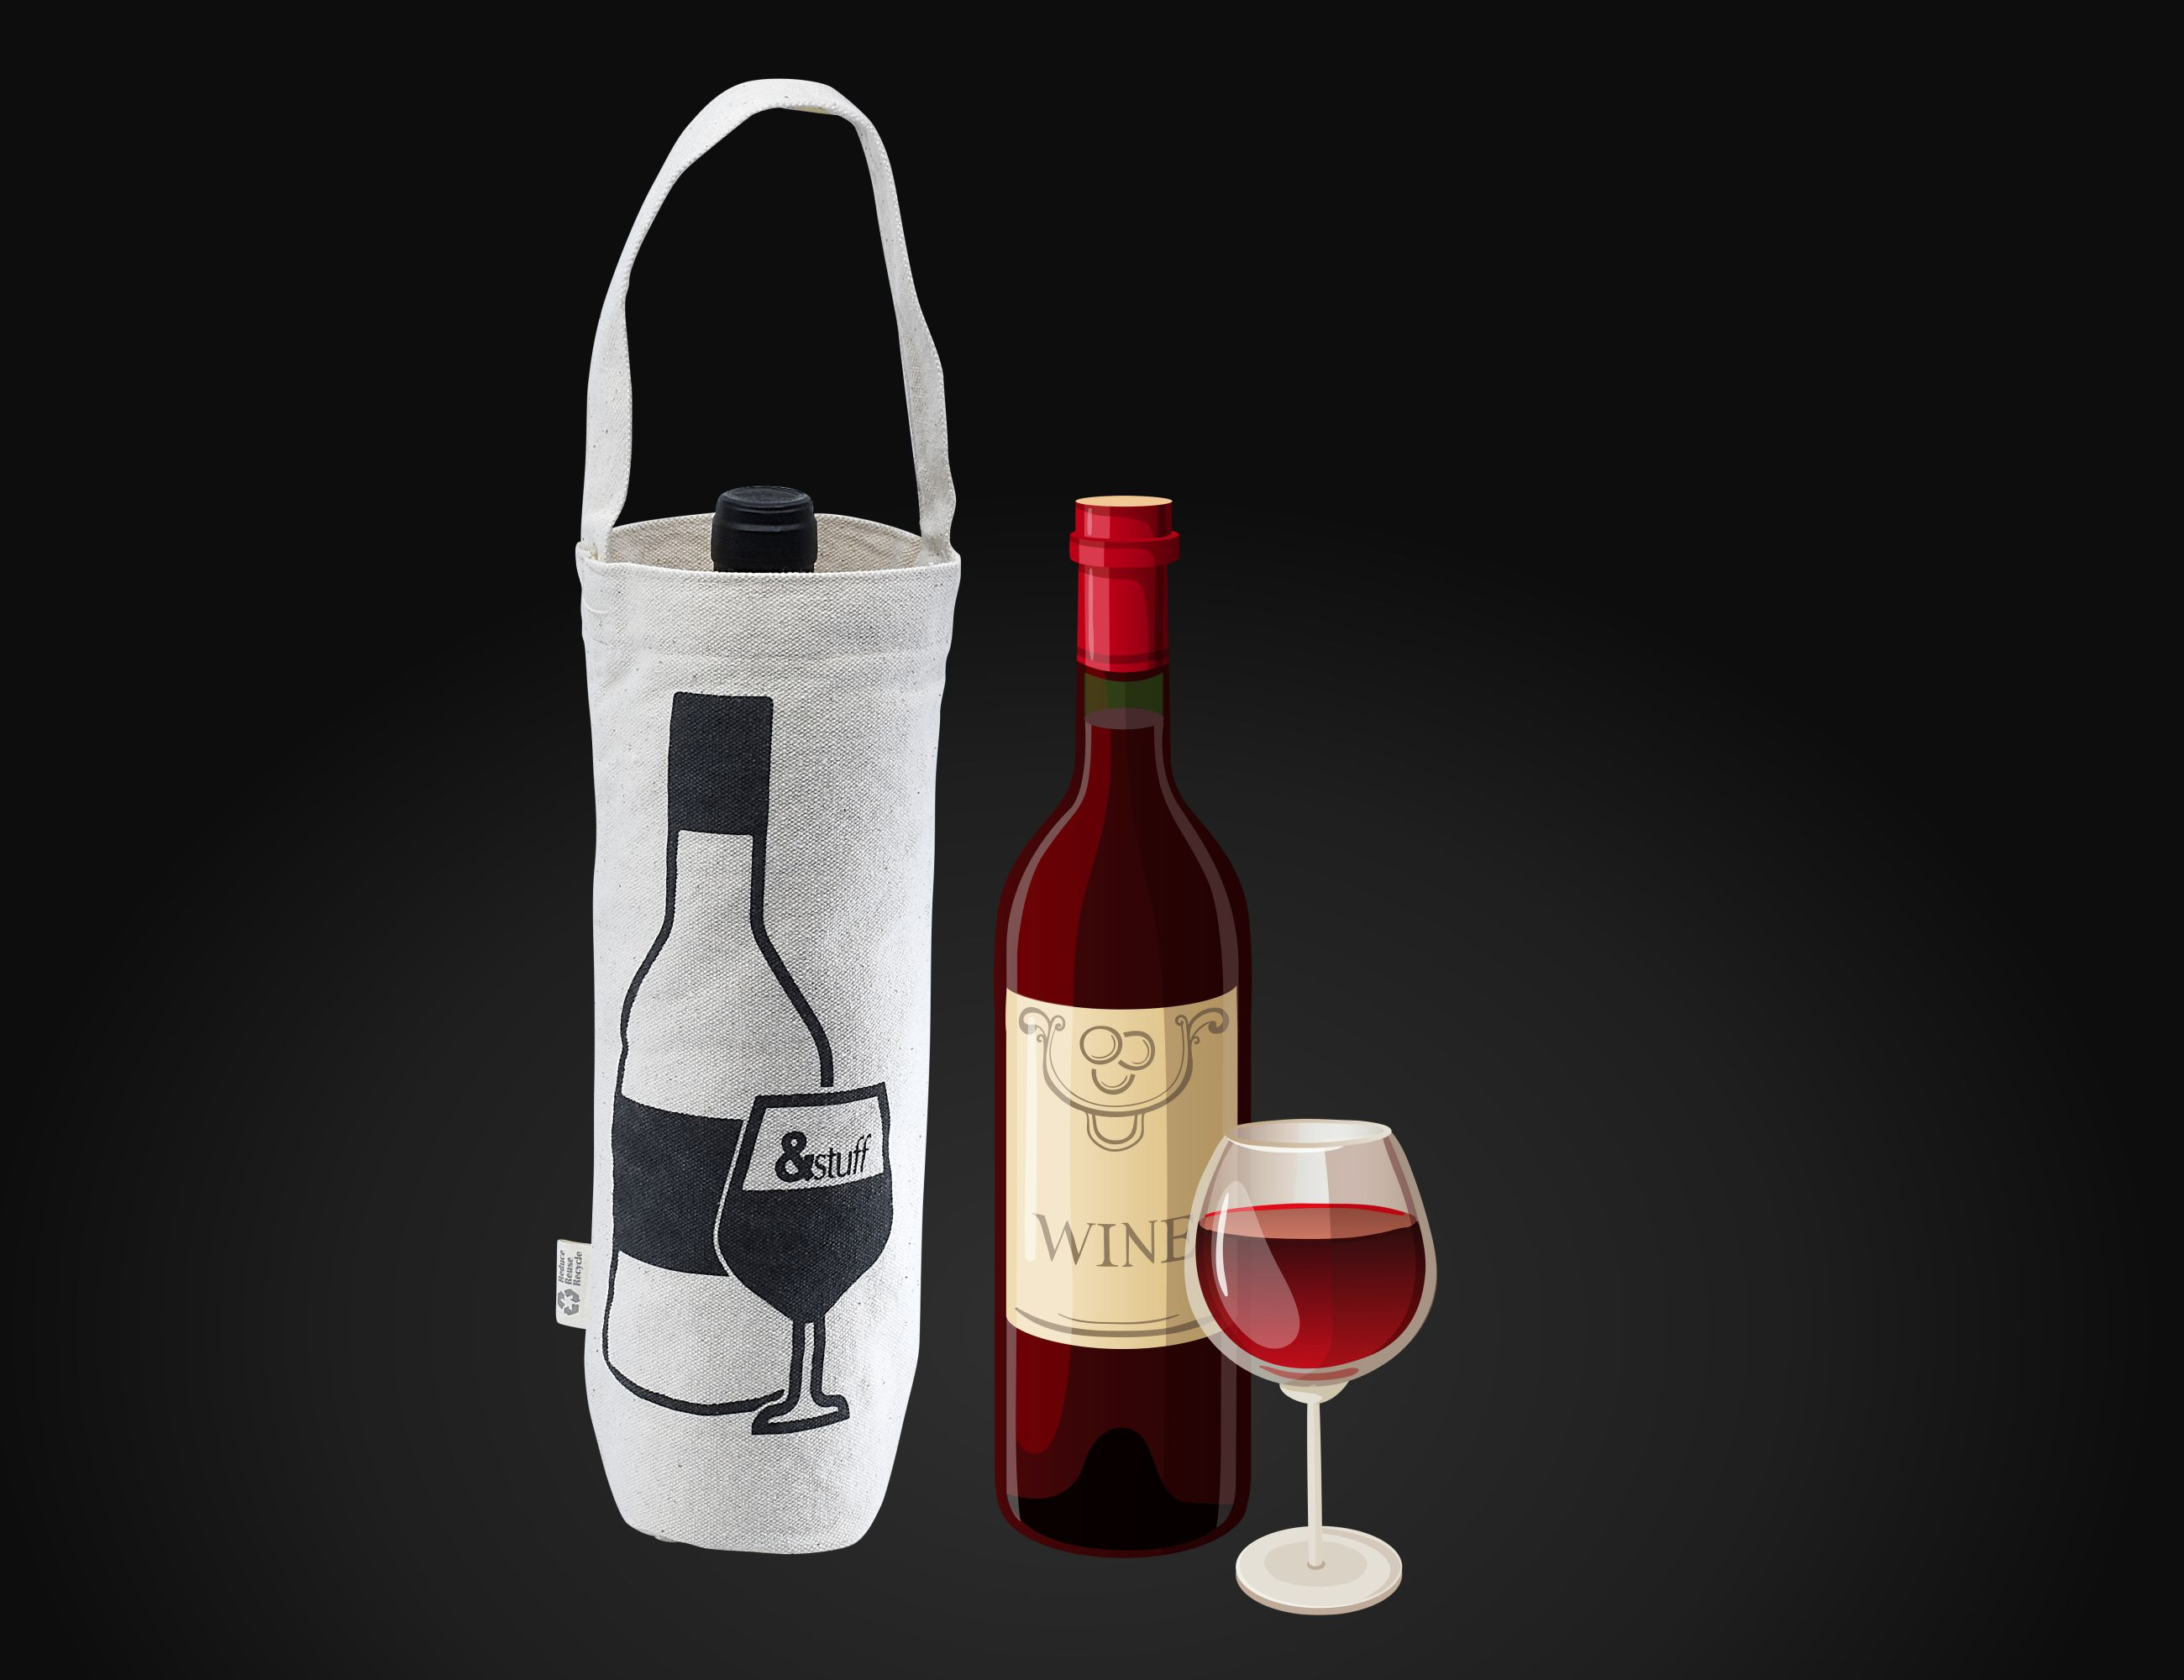 Calico Wine Bag 30cm x 16cm x 9cm